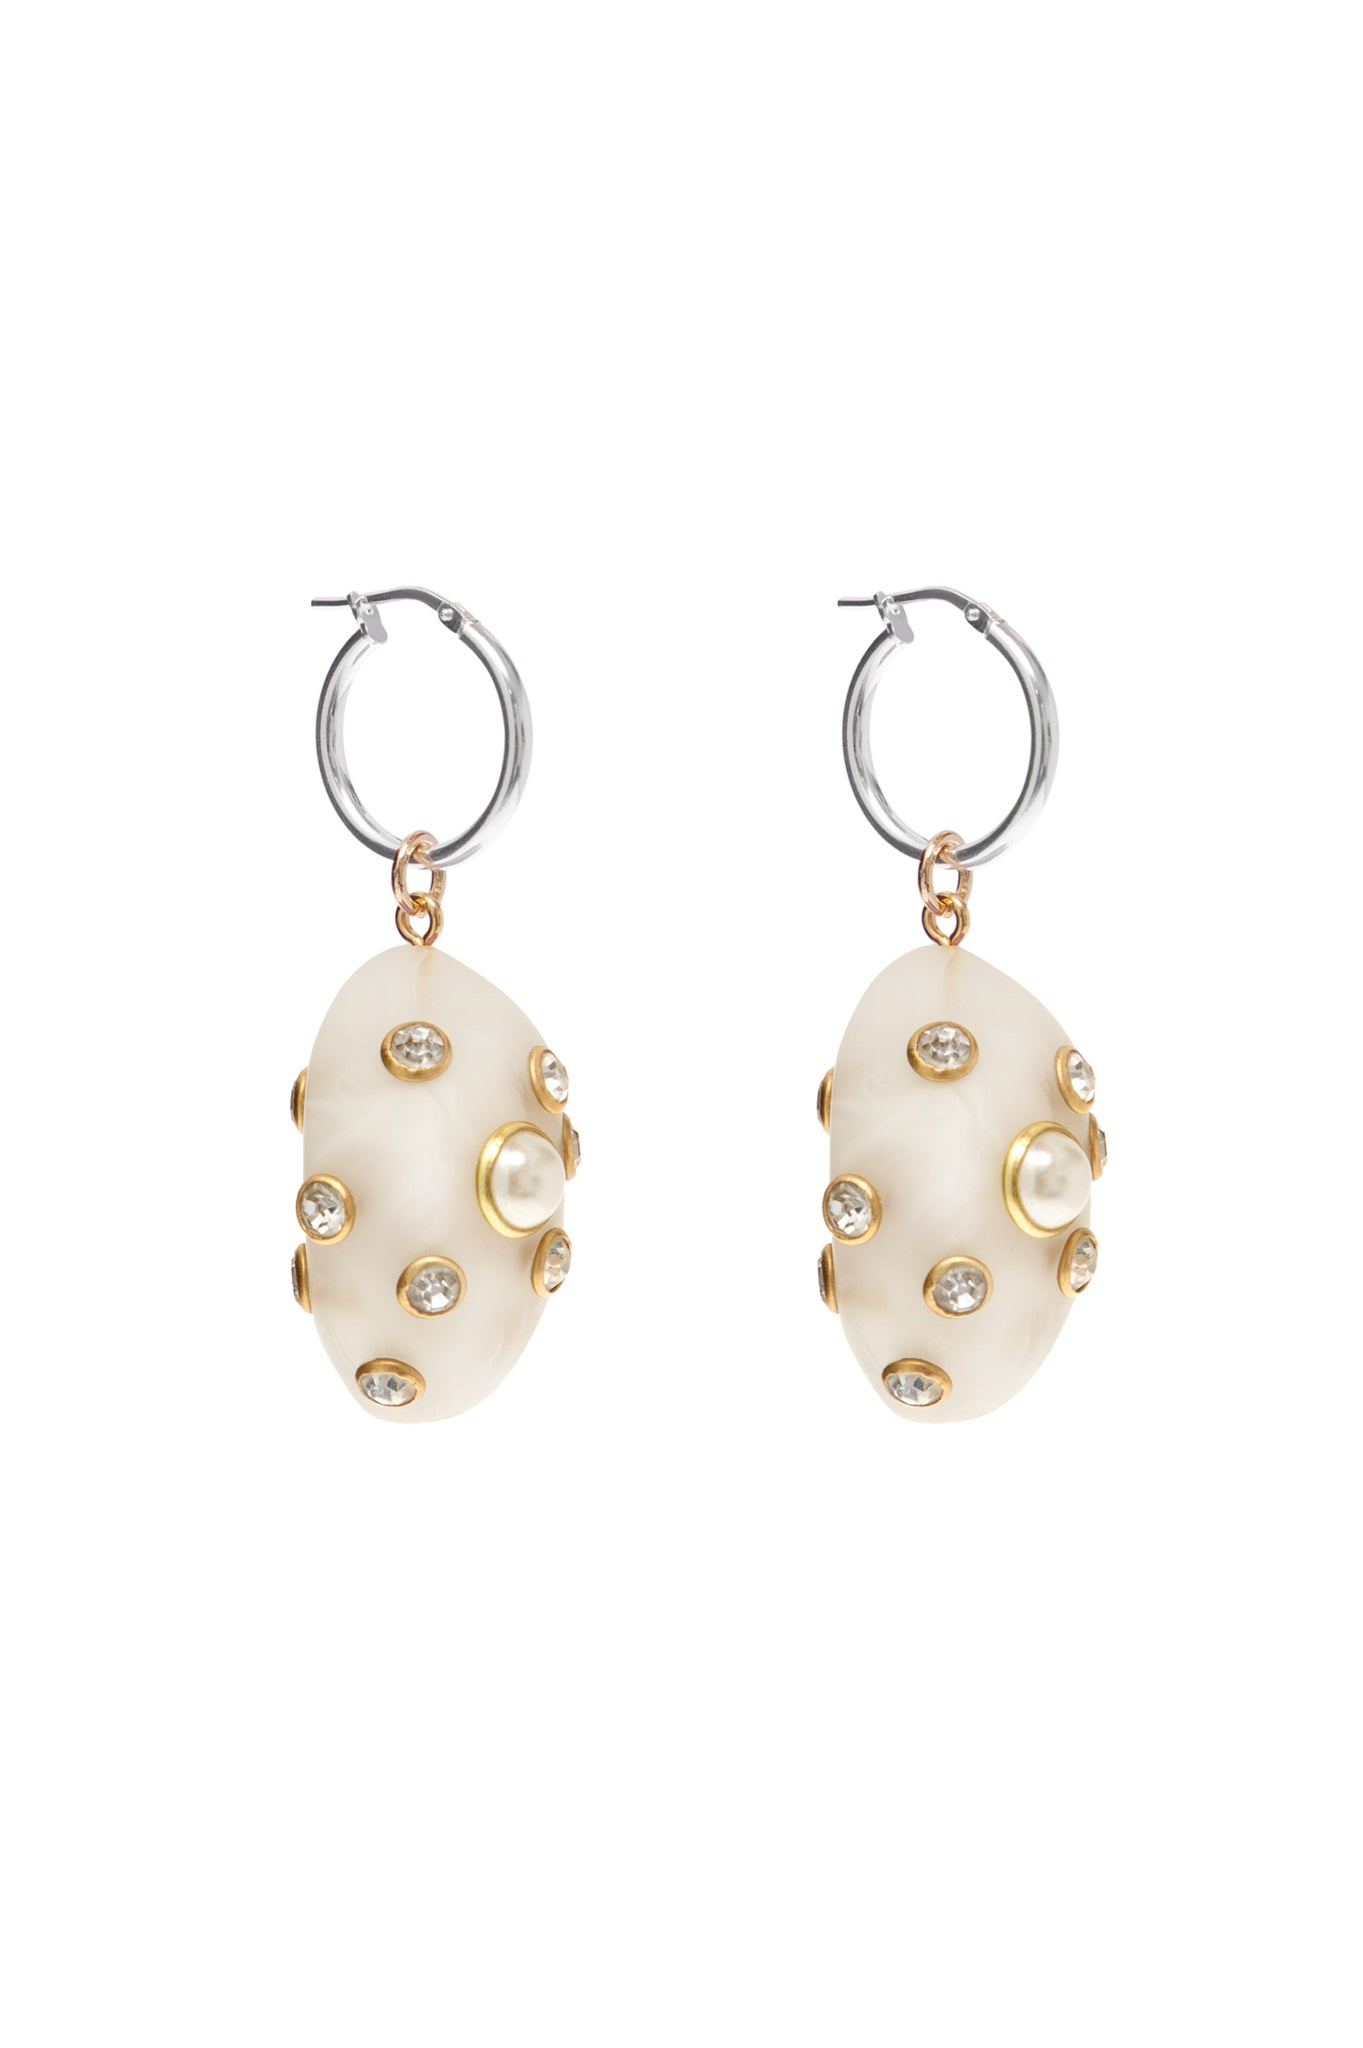 WHITE MARBLED SMALL ARTSY EARRINGS